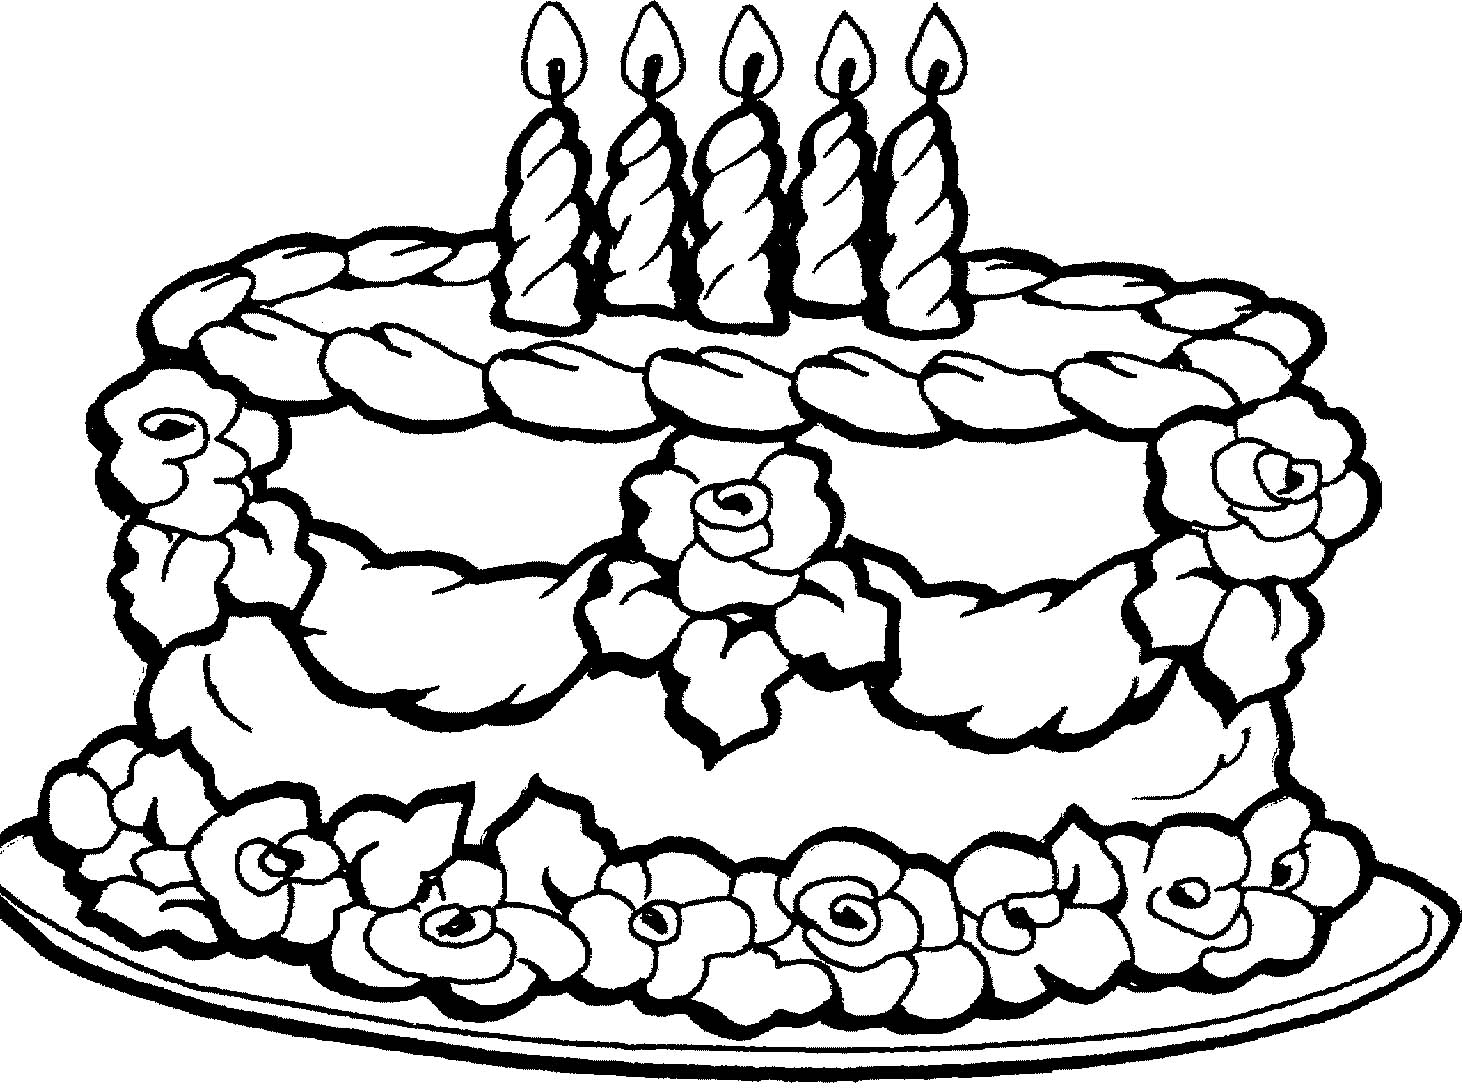 birthday cakes to colour in sheets ; birthday-cake-coloring-pages